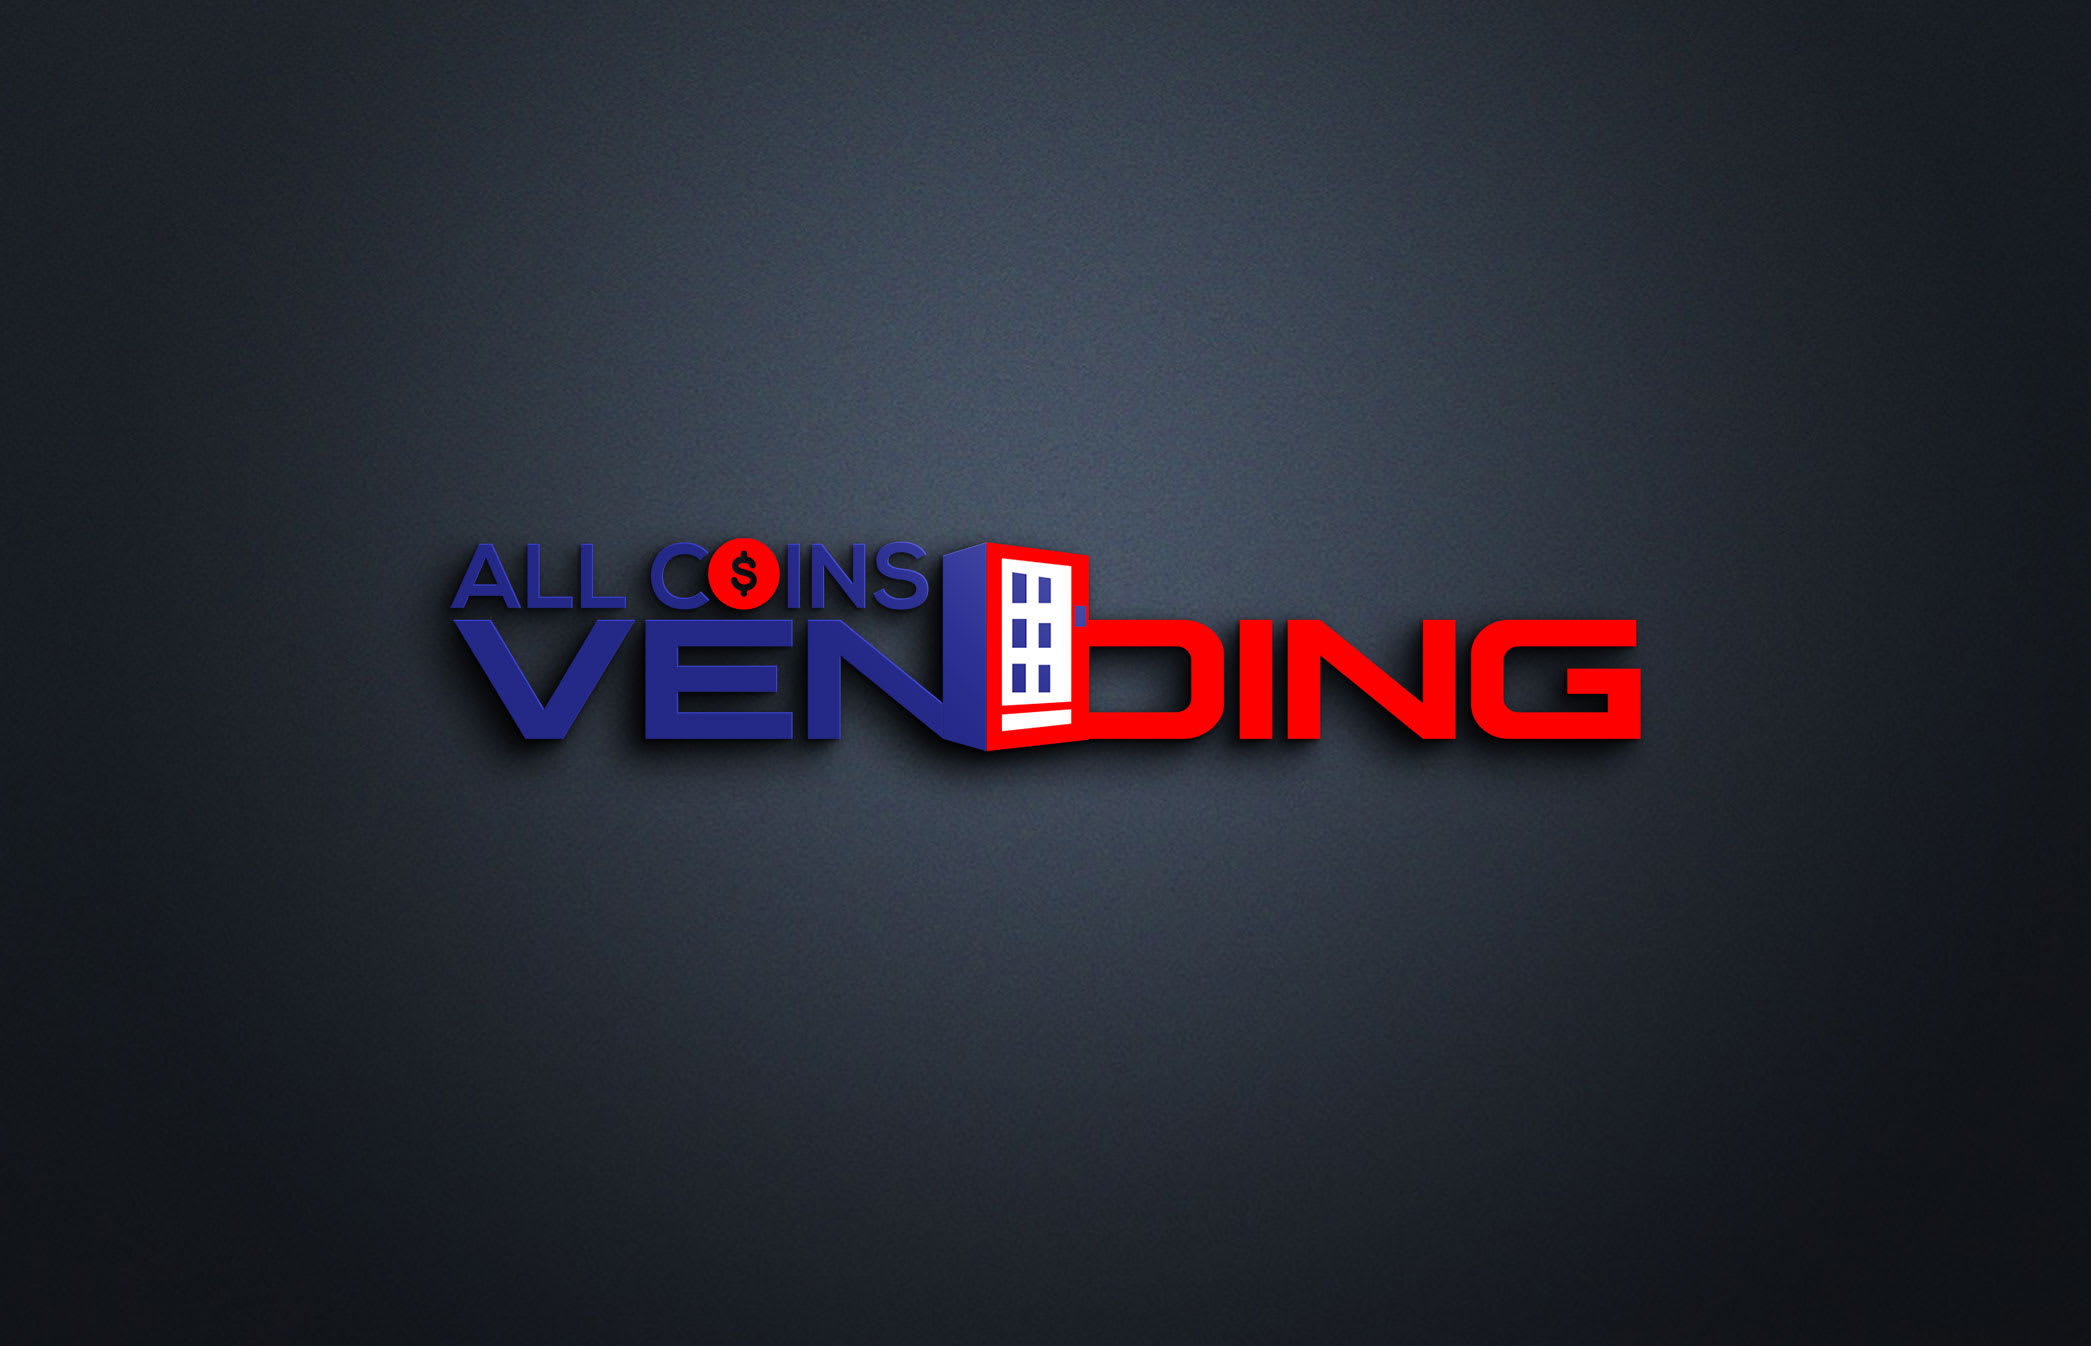 All Coins Vending